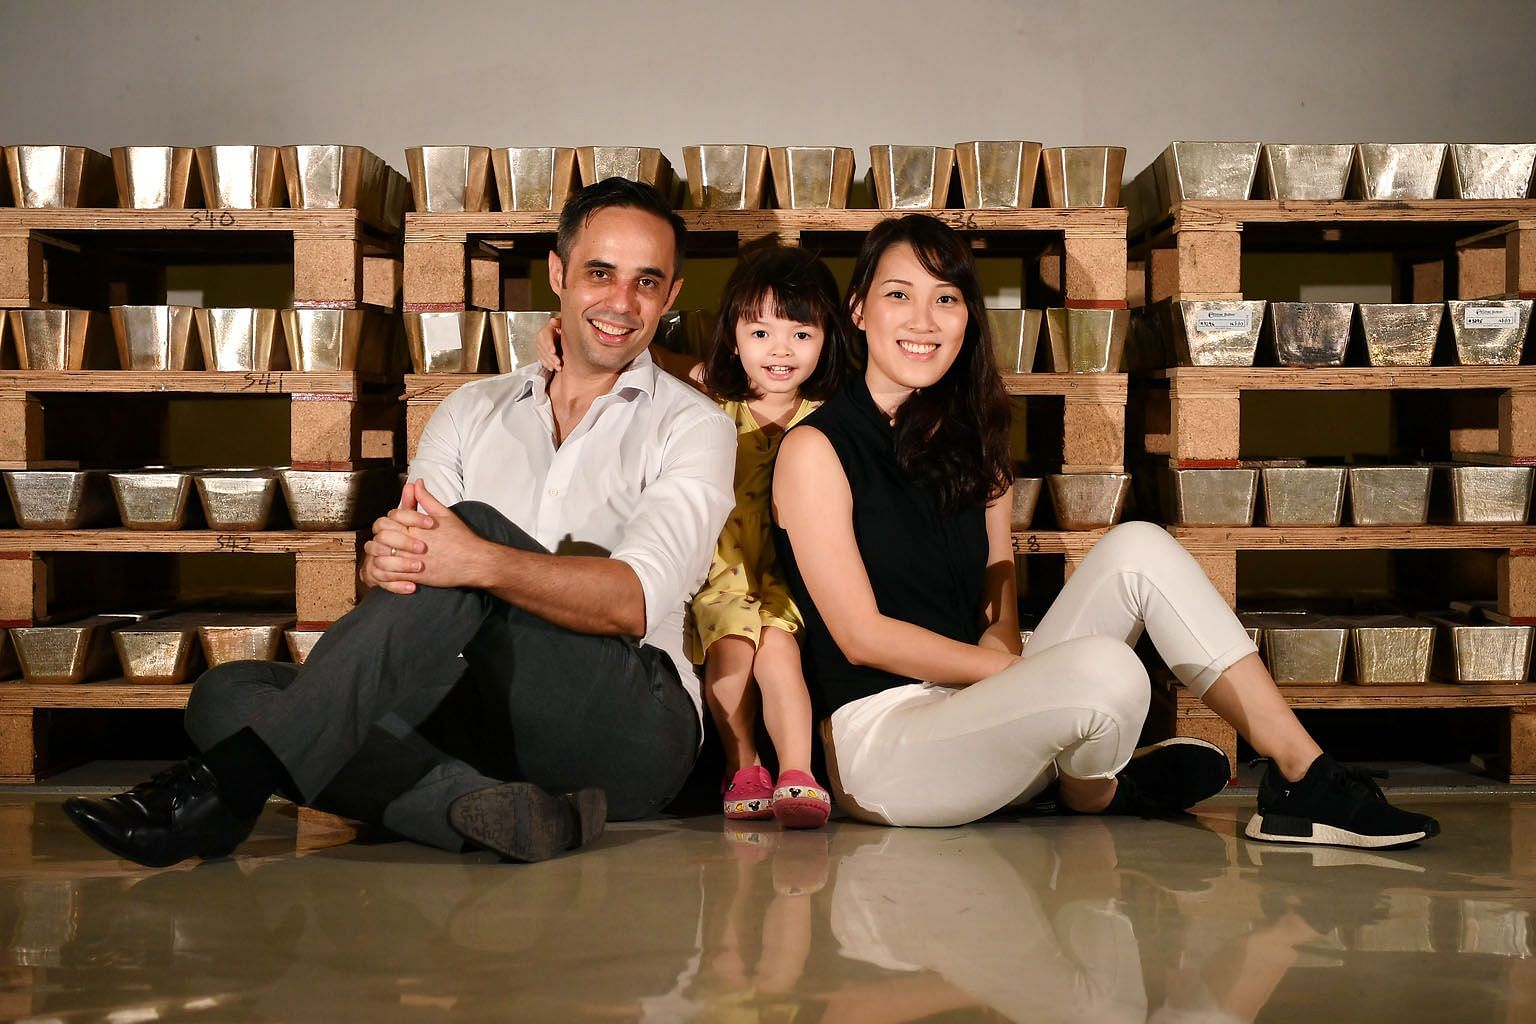 Silver Bullion founder Gregor Gregersen, with his wife Michelle Tay and daughter Daenerys, in front of silver bars at The Safe House, a precious metals vault in Chai Chee. He advocates long-term investing in undervalued assets that have good upside based